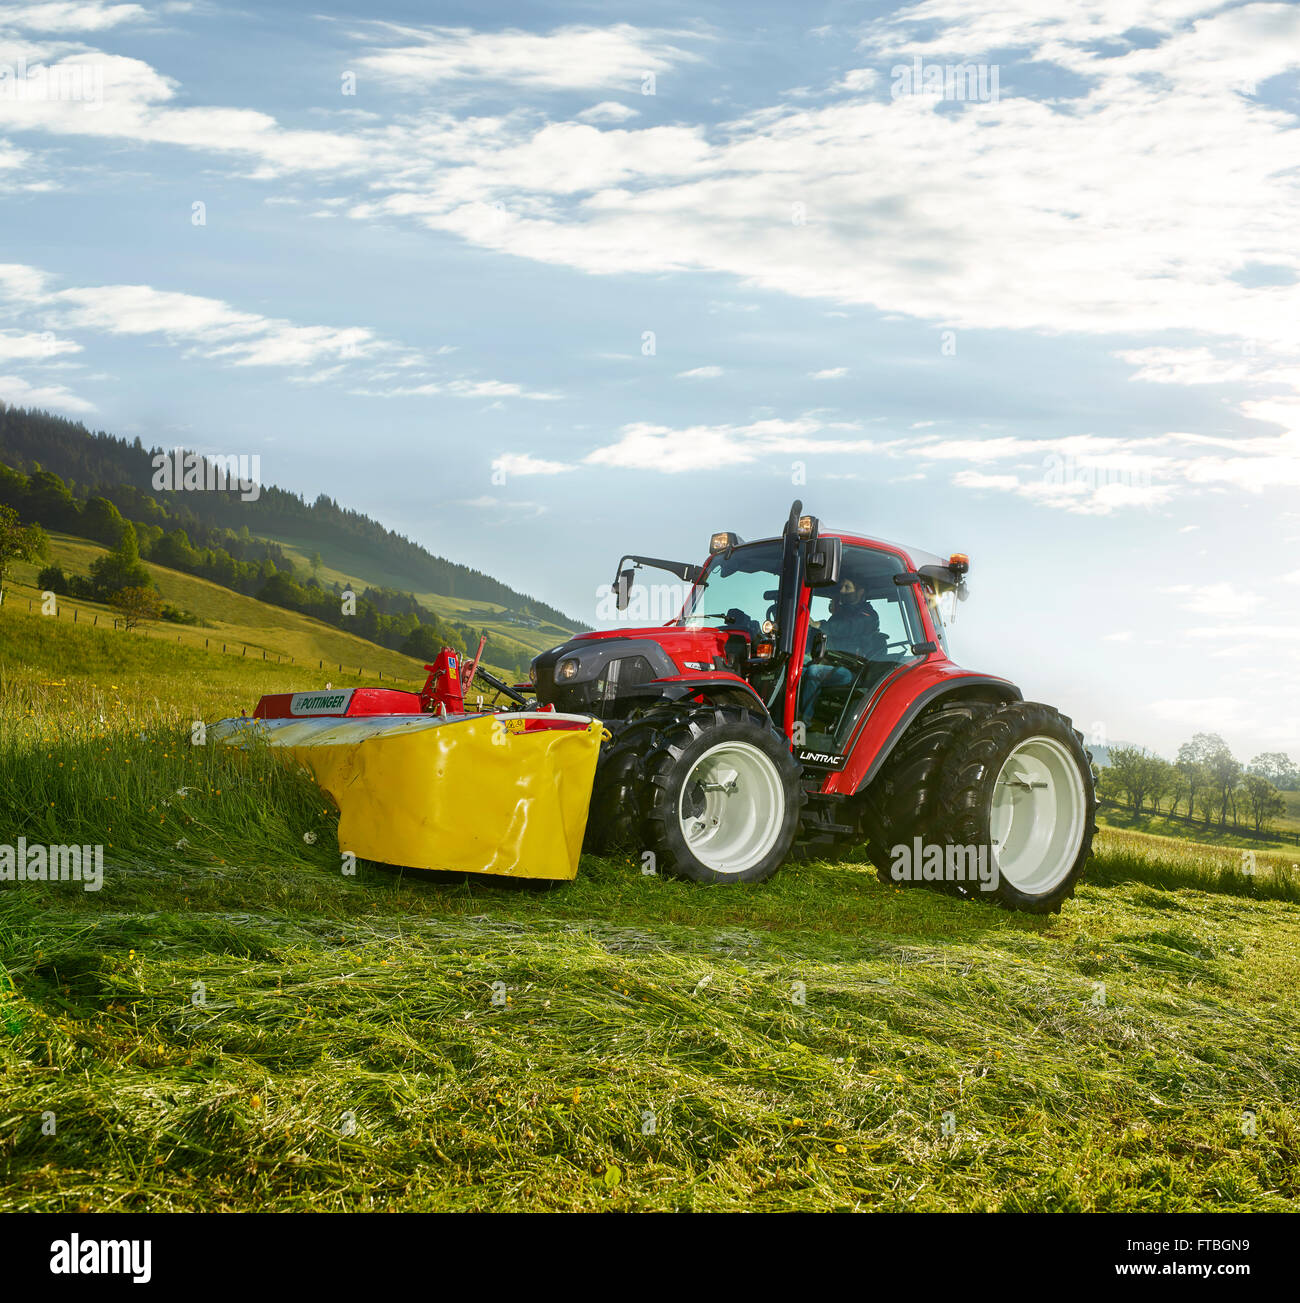 Tractor with dual wheels mowing a field, Hopfgarten, Brixental, Tyrol, Austria - Stock Image